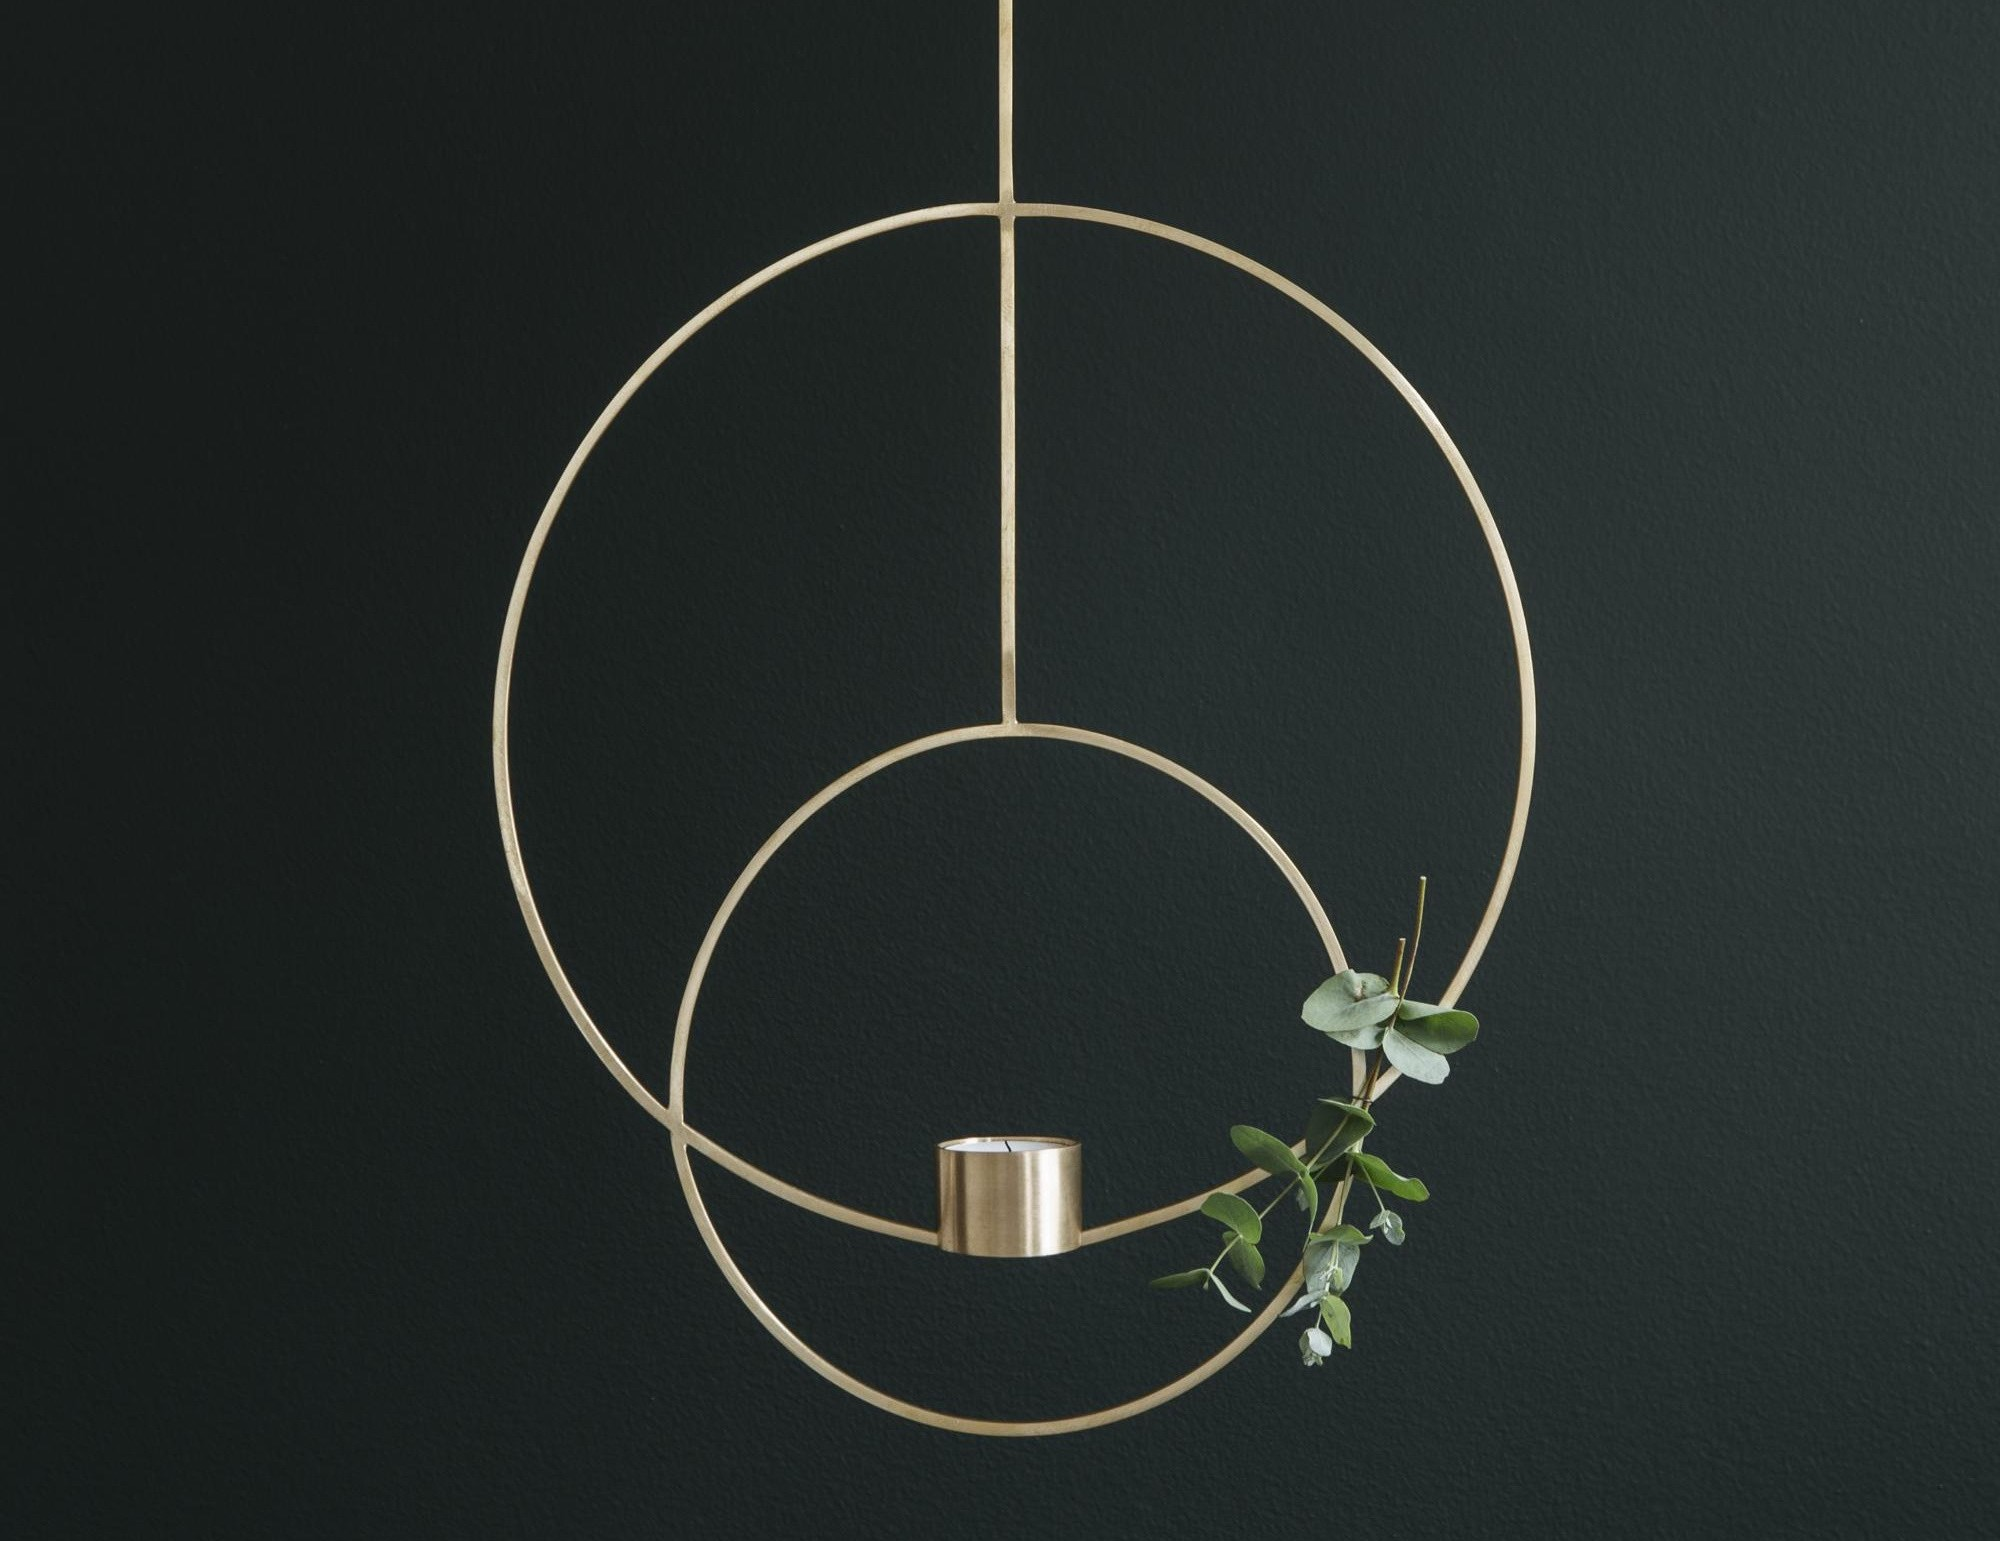 Hang This Modern And Simplistic Candleholder Design To Create Beautiful Living Light Hanging Tealight Designed By Ferm Living Interior 3000